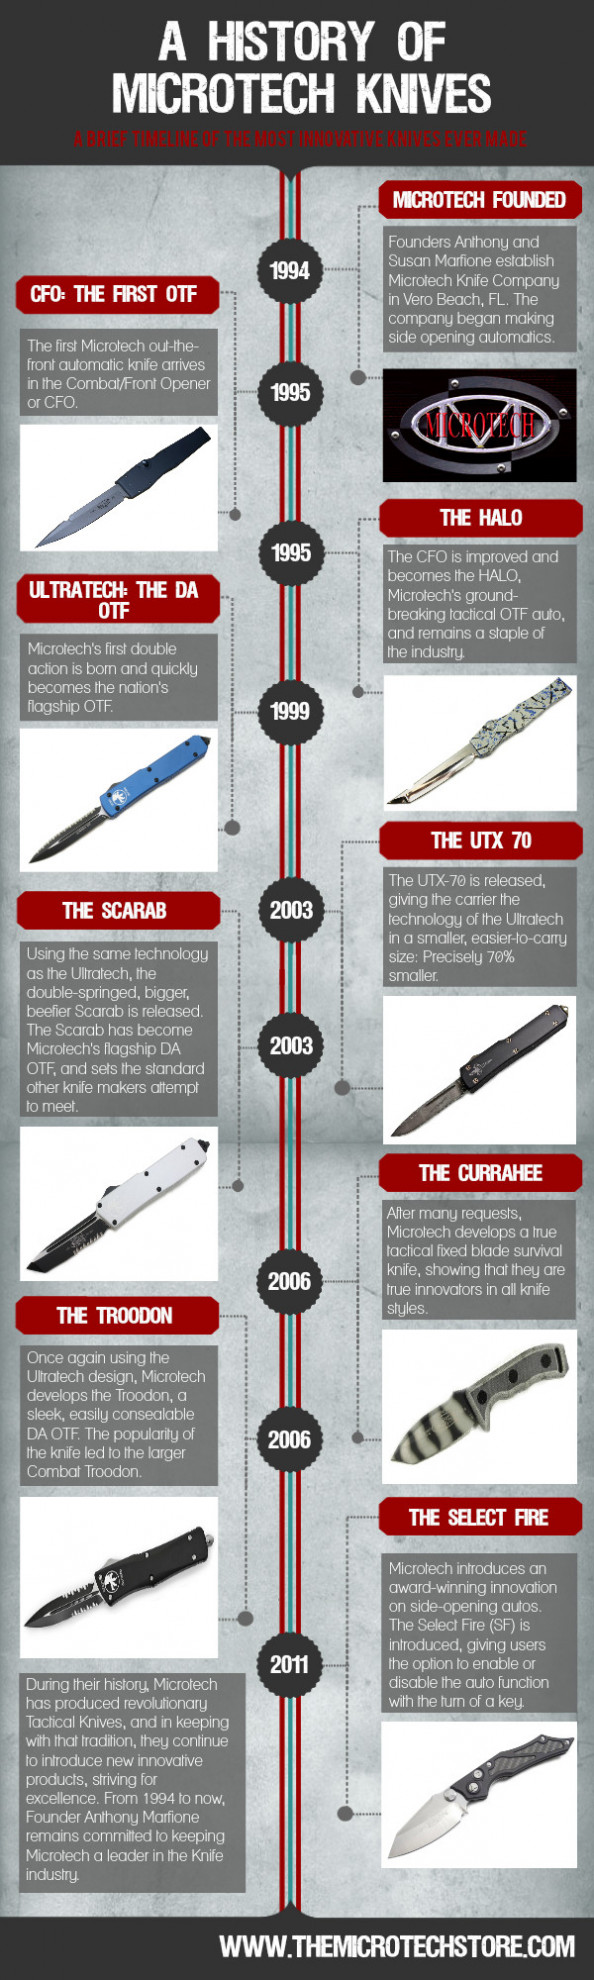 A History Of Microtech Knives Infographic